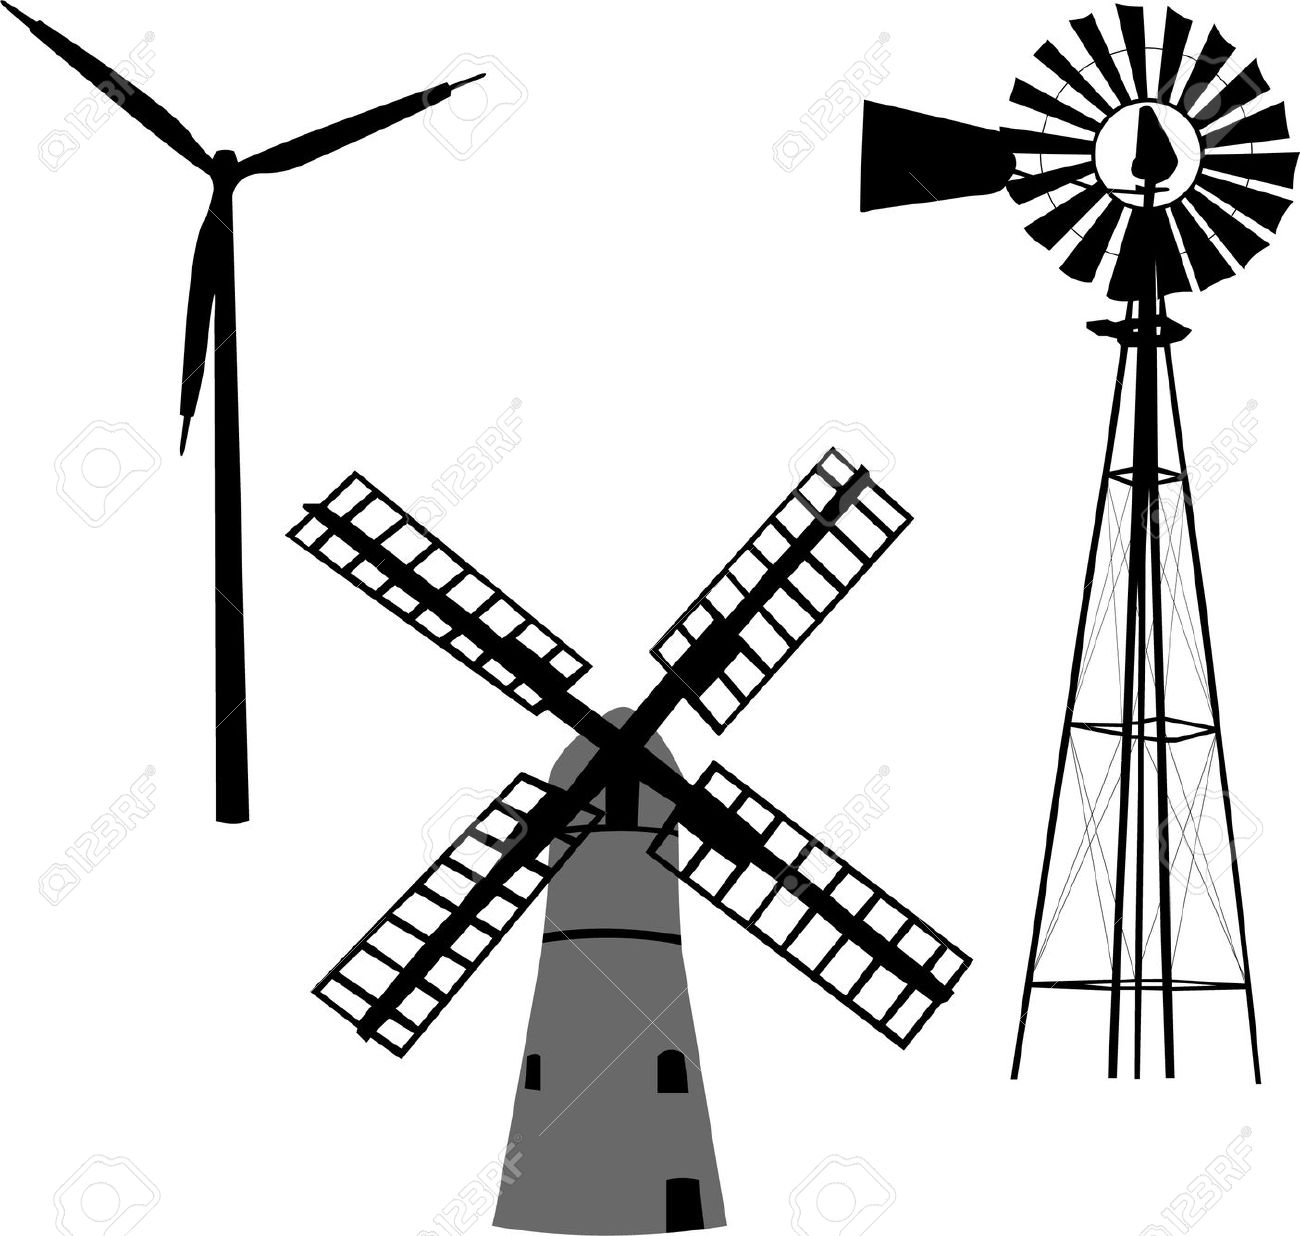 Westernwindmill black and white clipart clip art royalty free library Collection of Windmill clipart | Free download best Windmill ... clip art royalty free library